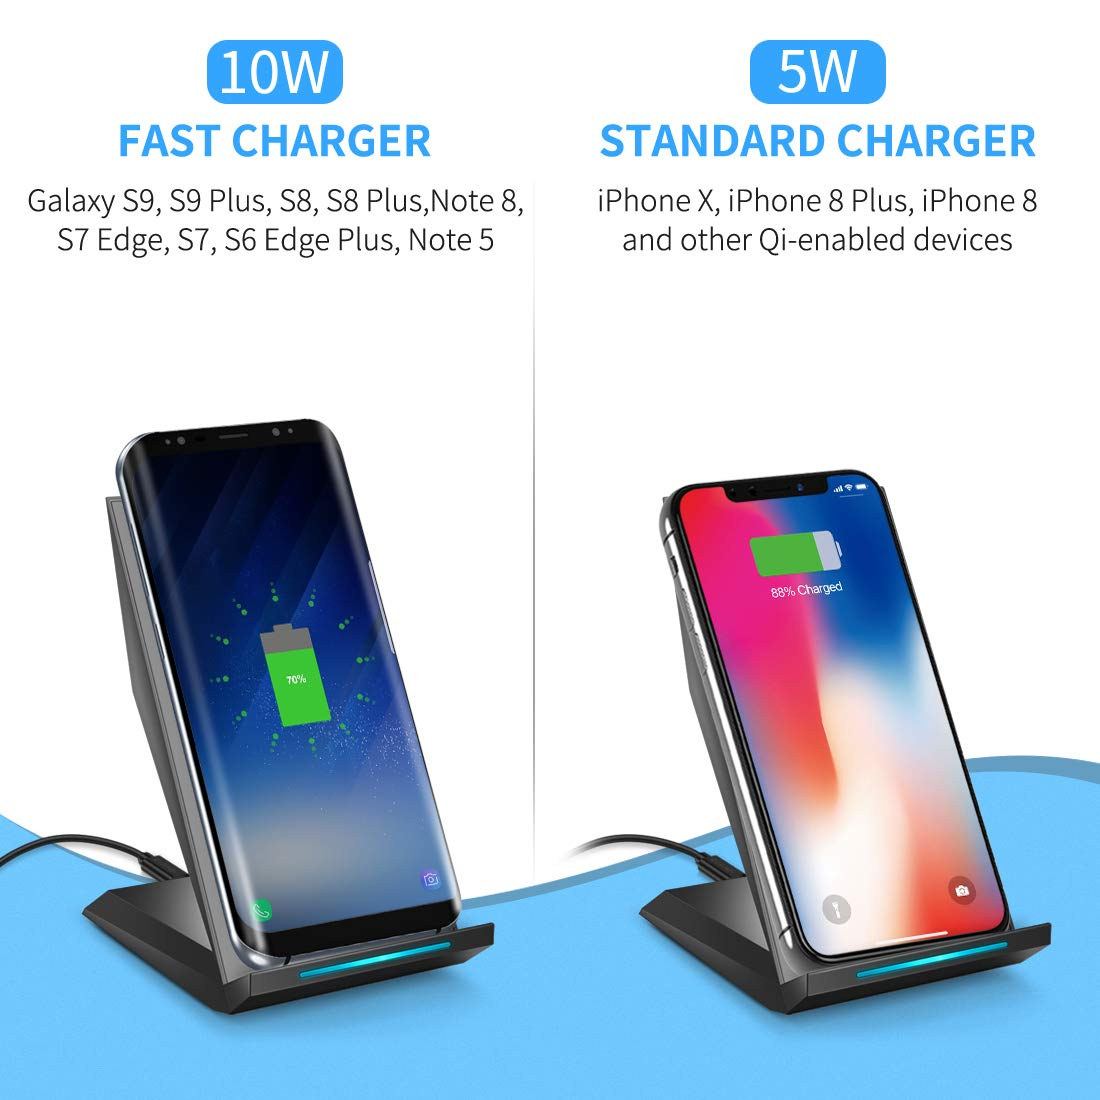 CHOETECH Cargador Inalámbrico Rápido Fast Wireless Charger Qi Cargador Rápido Soporte Compatible con iPhone XS/XS Max/XR/X/8/8 Plus, 10W Galaxy Note ...